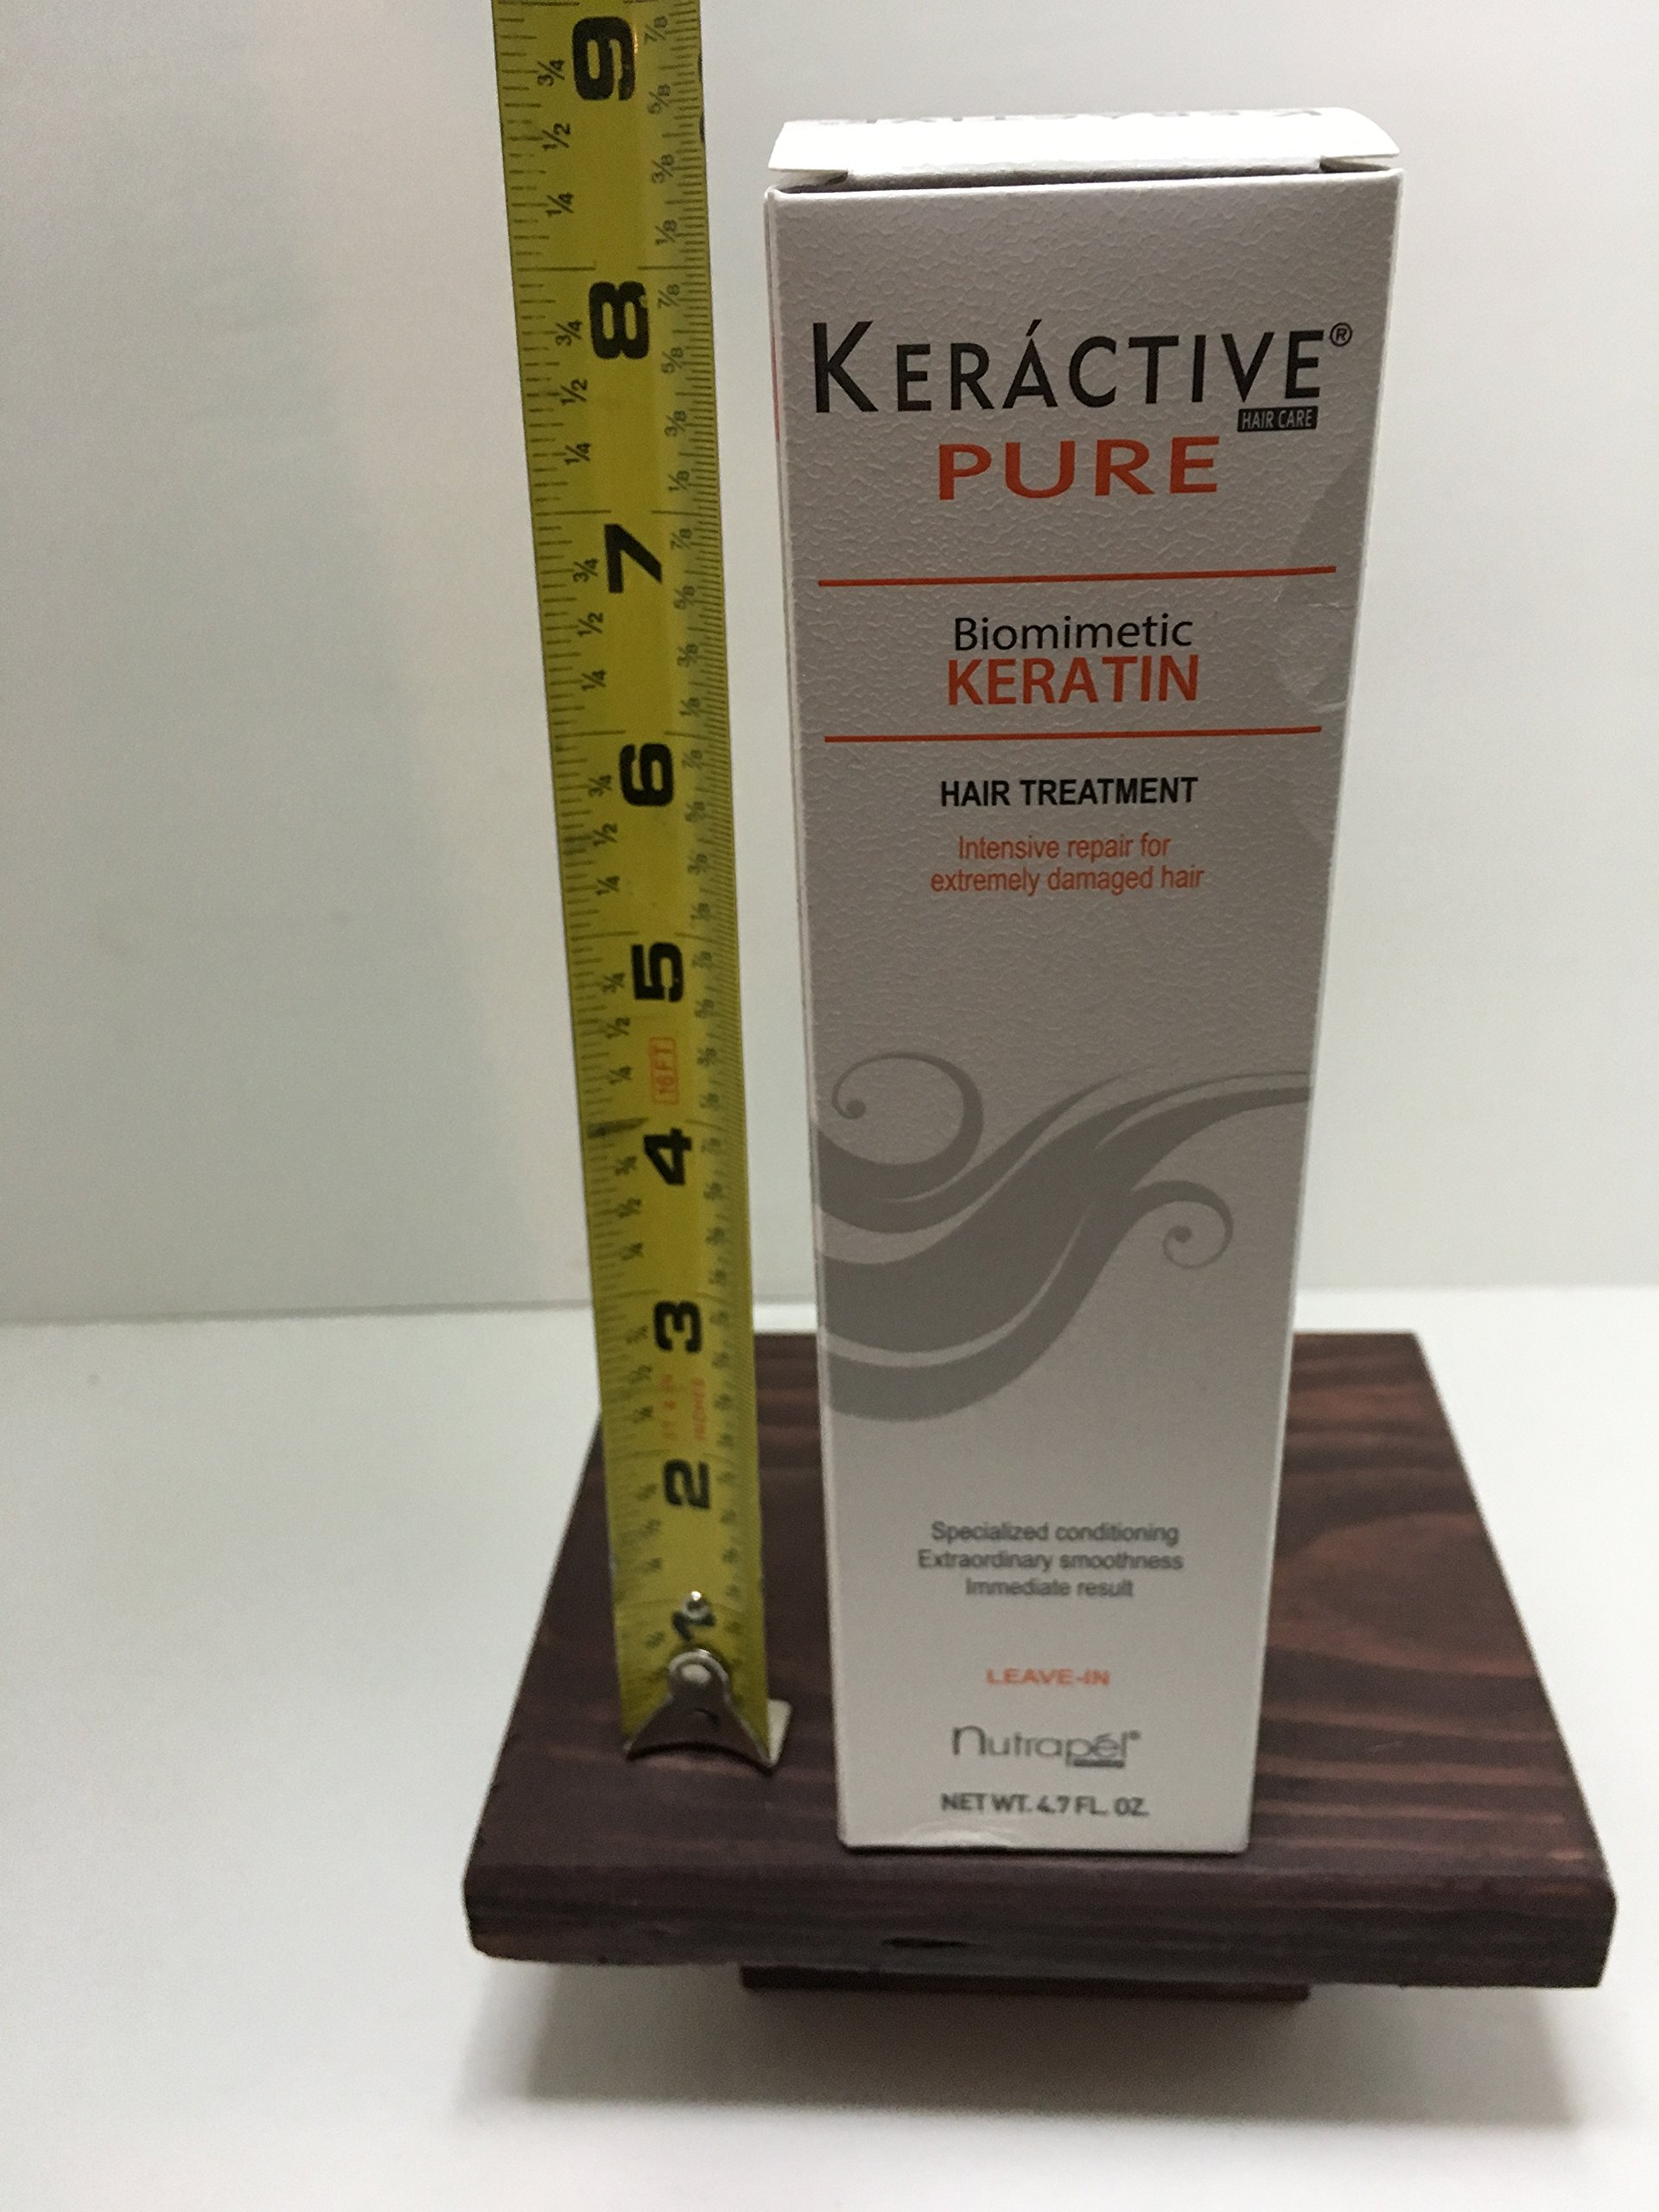 KERACTIVE PURE KERATIN HAIR TREATMENT KERATINA PURA TRATAMIENTO CAPILAR